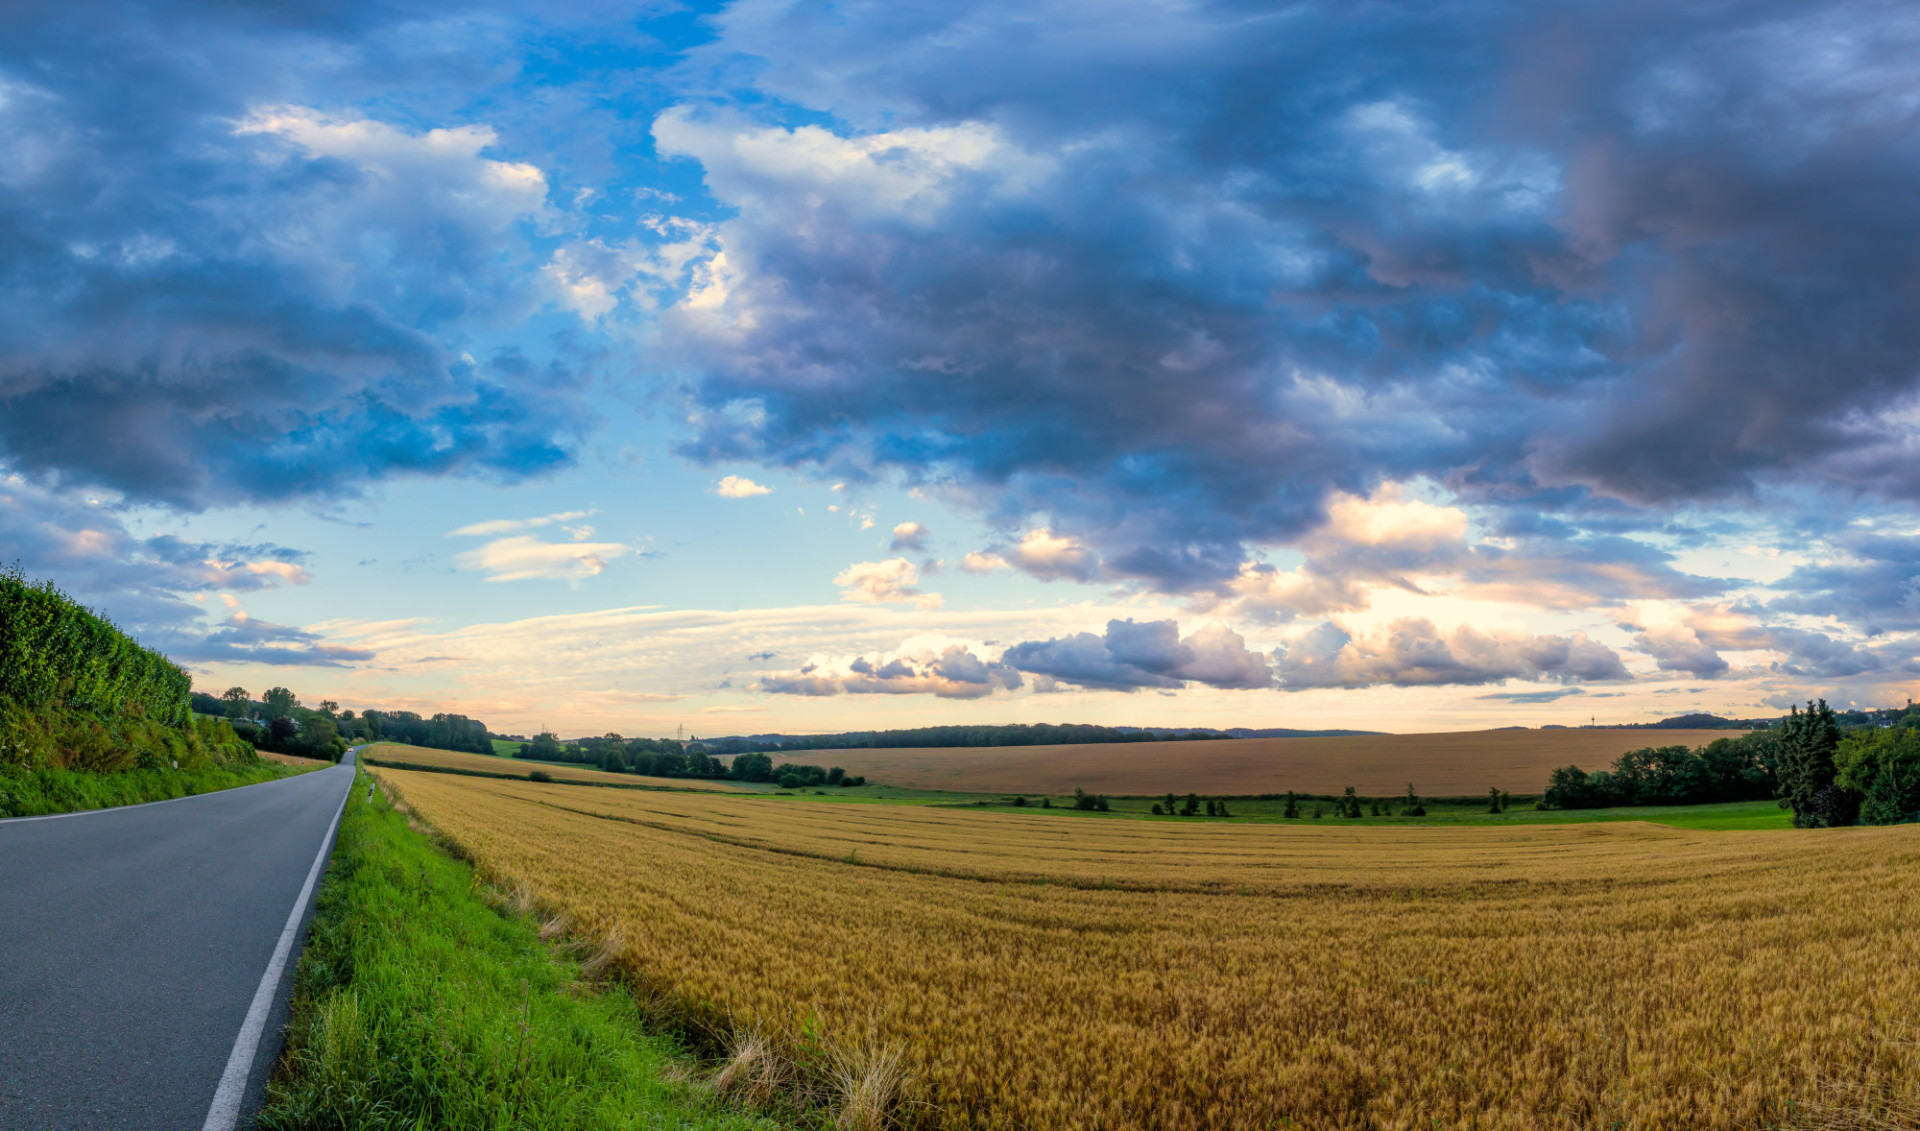 German country road with stormy clouds